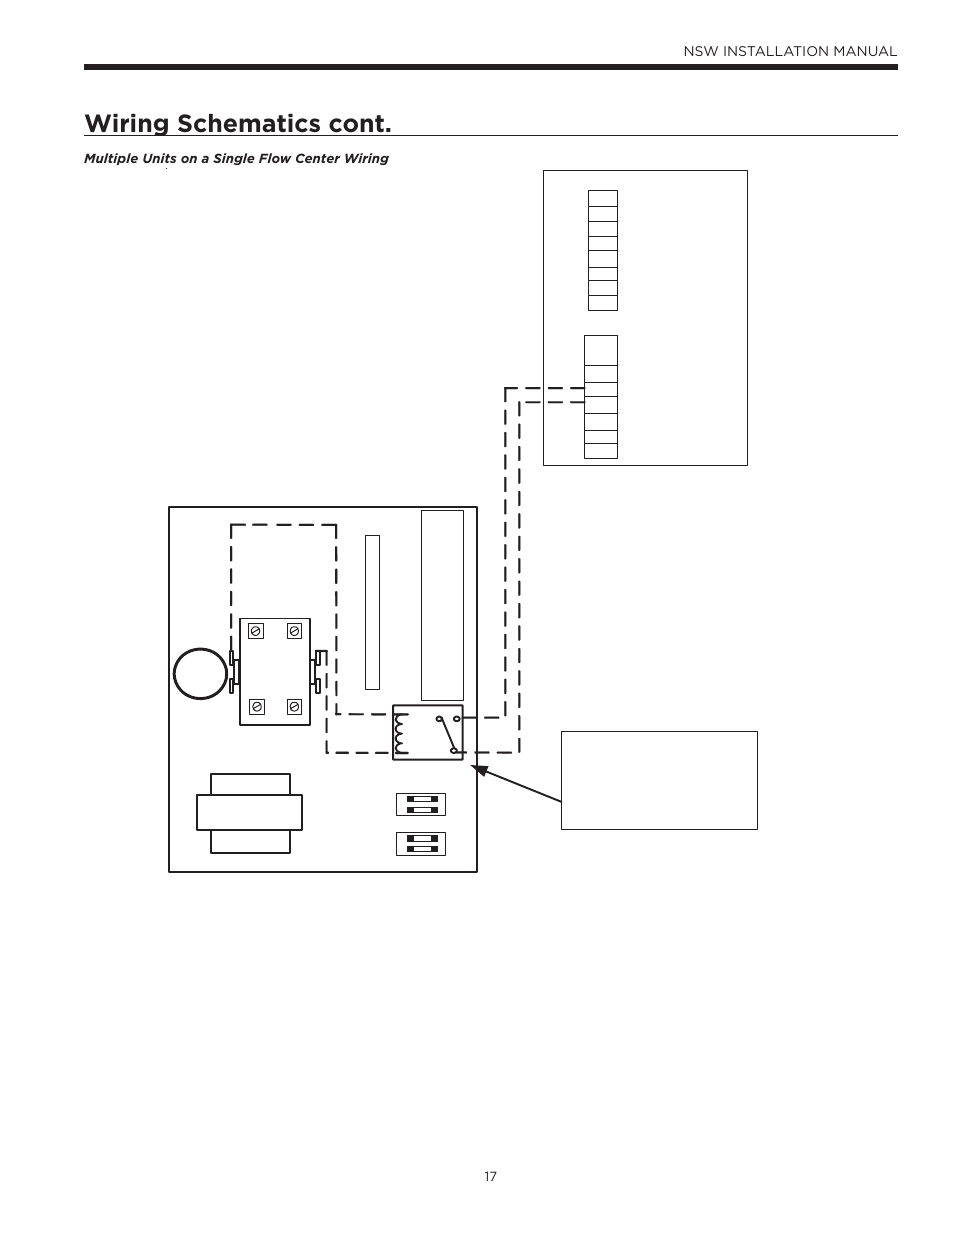 waterfurnace envision hydronic nsw page17?resize\=665%2C861 lucci ceiling fans instructions lader blog on lucci ceiling fan avion ceiling fan wiring diagram at n-0.co